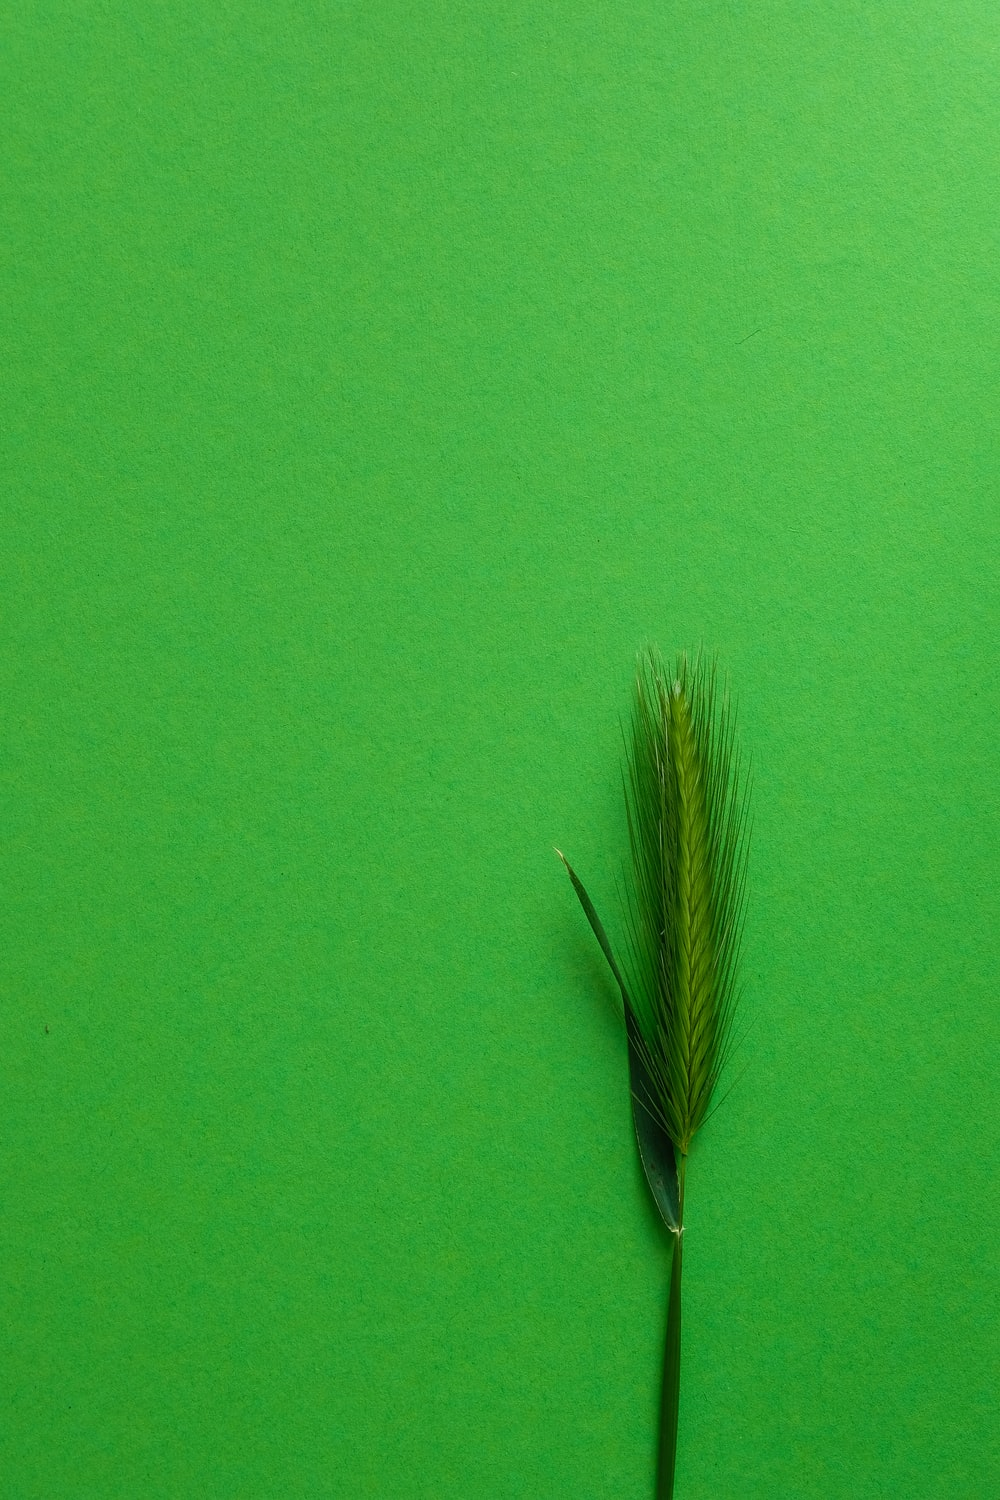 green and brown feather on green textile